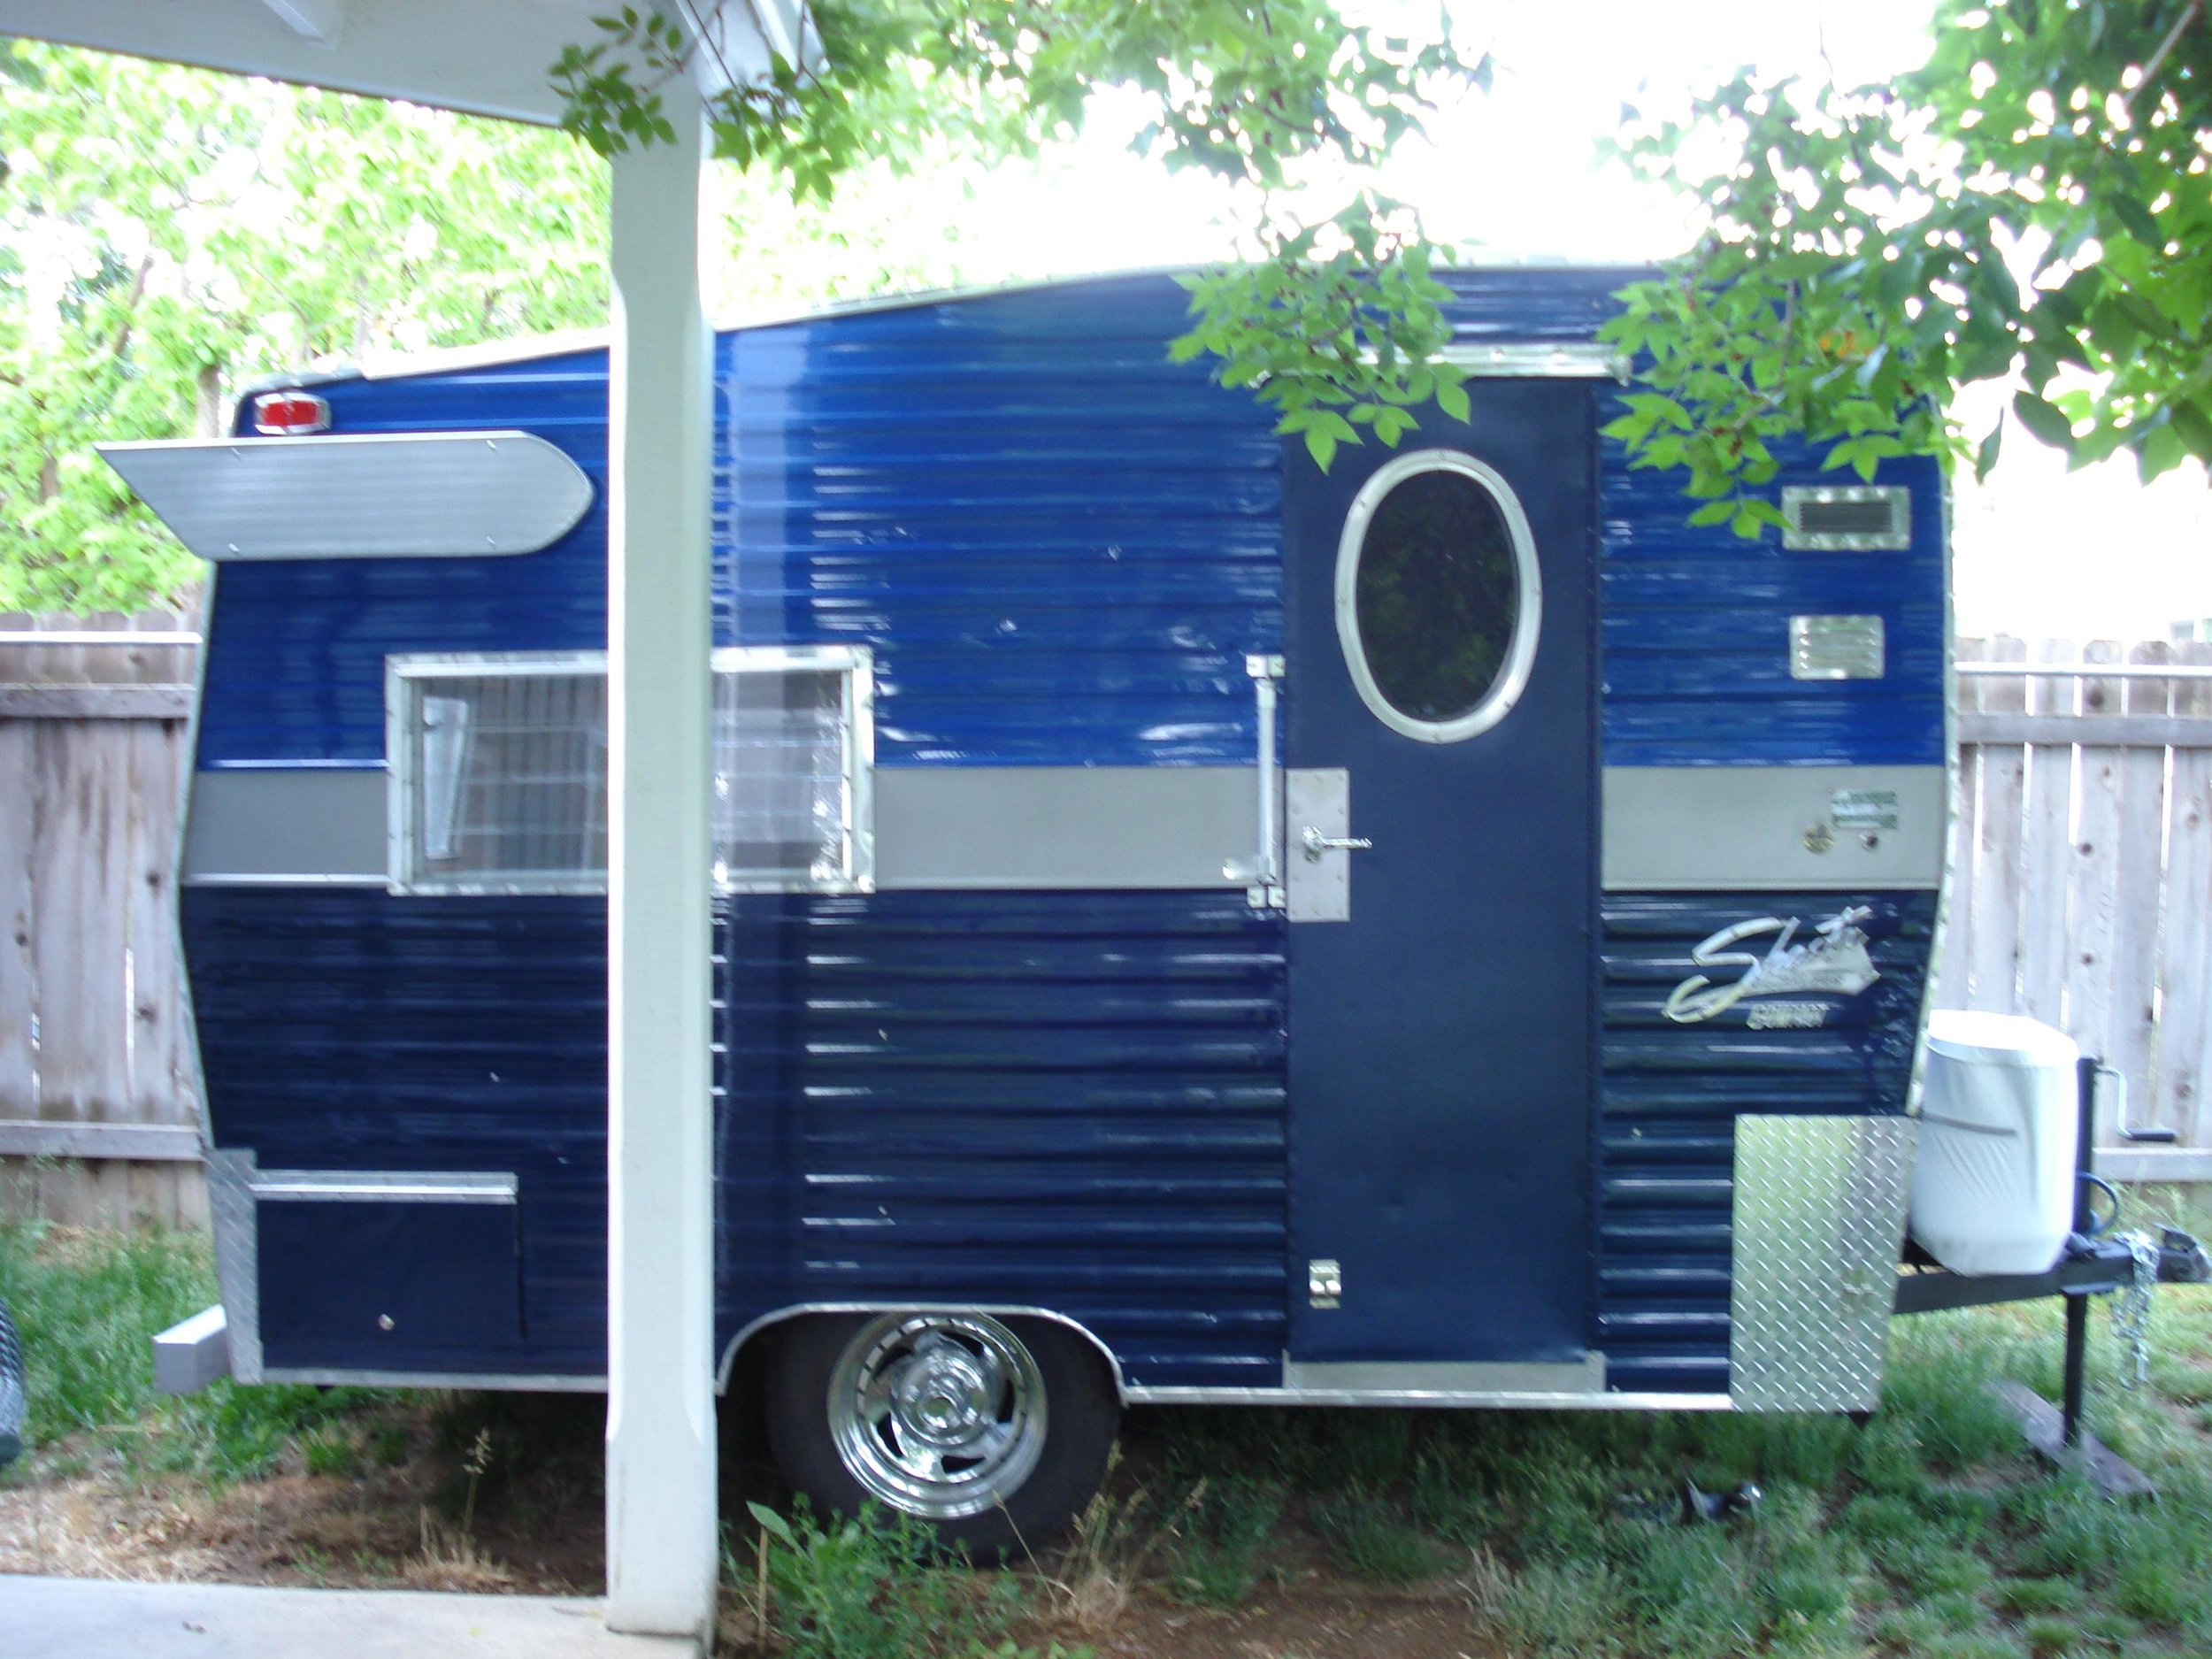 Refrerbbed 1970's Shasta! All the comforts of home, well...almost!